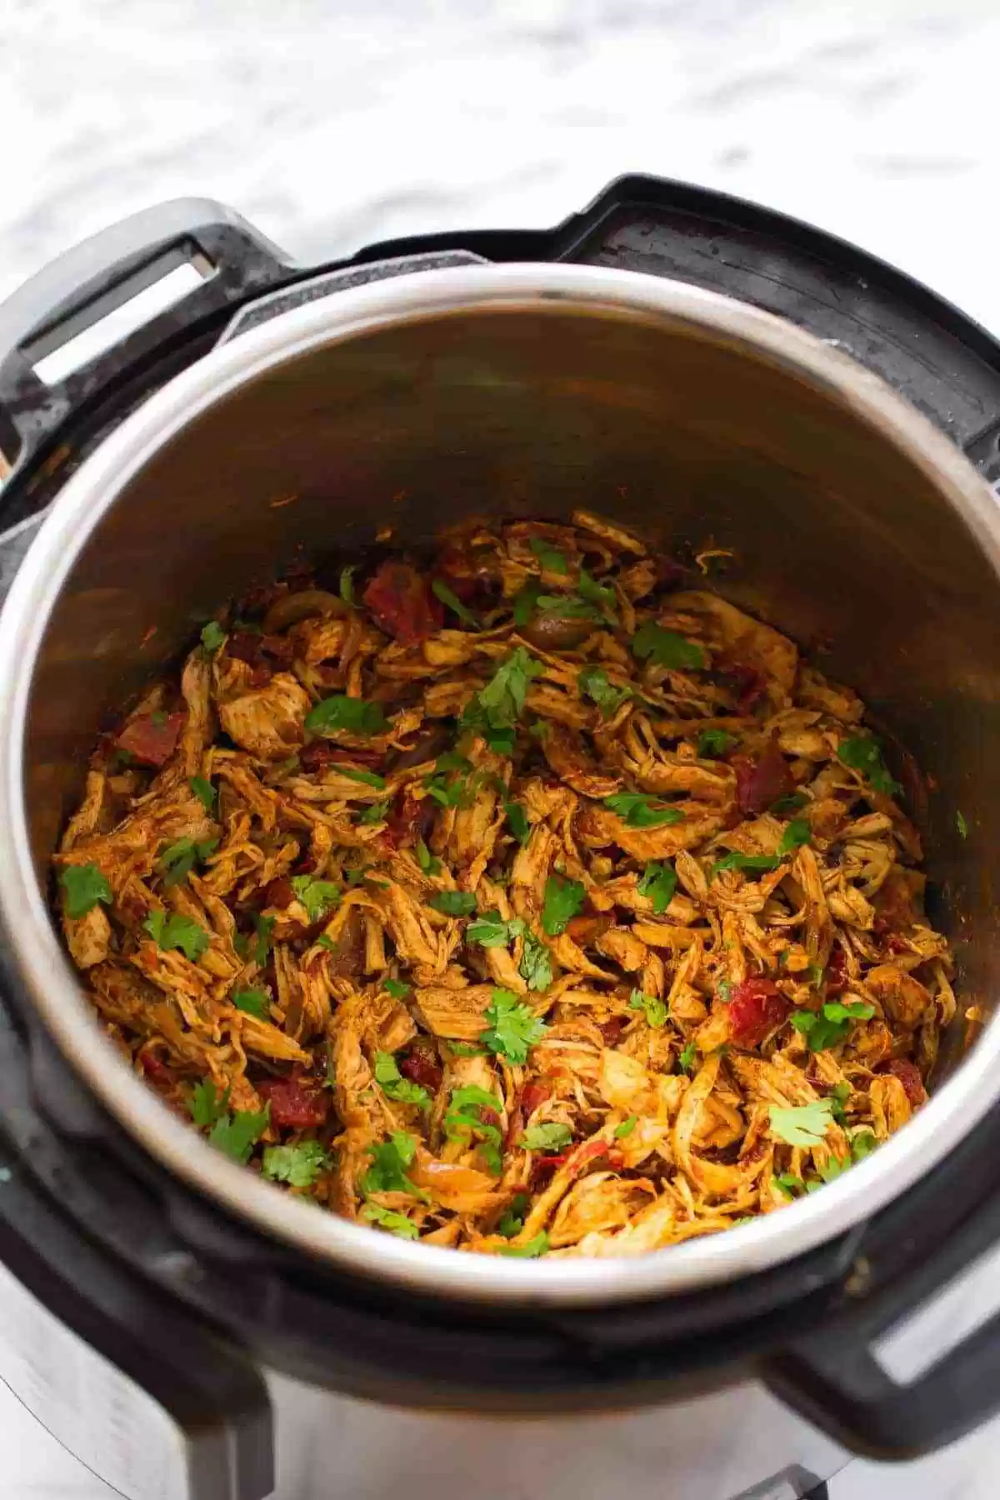 Instant Pot Shredded Chicken Tacos Shredded Chicken Tacos Pulled Chicken Recipes Instant Pot Chicken